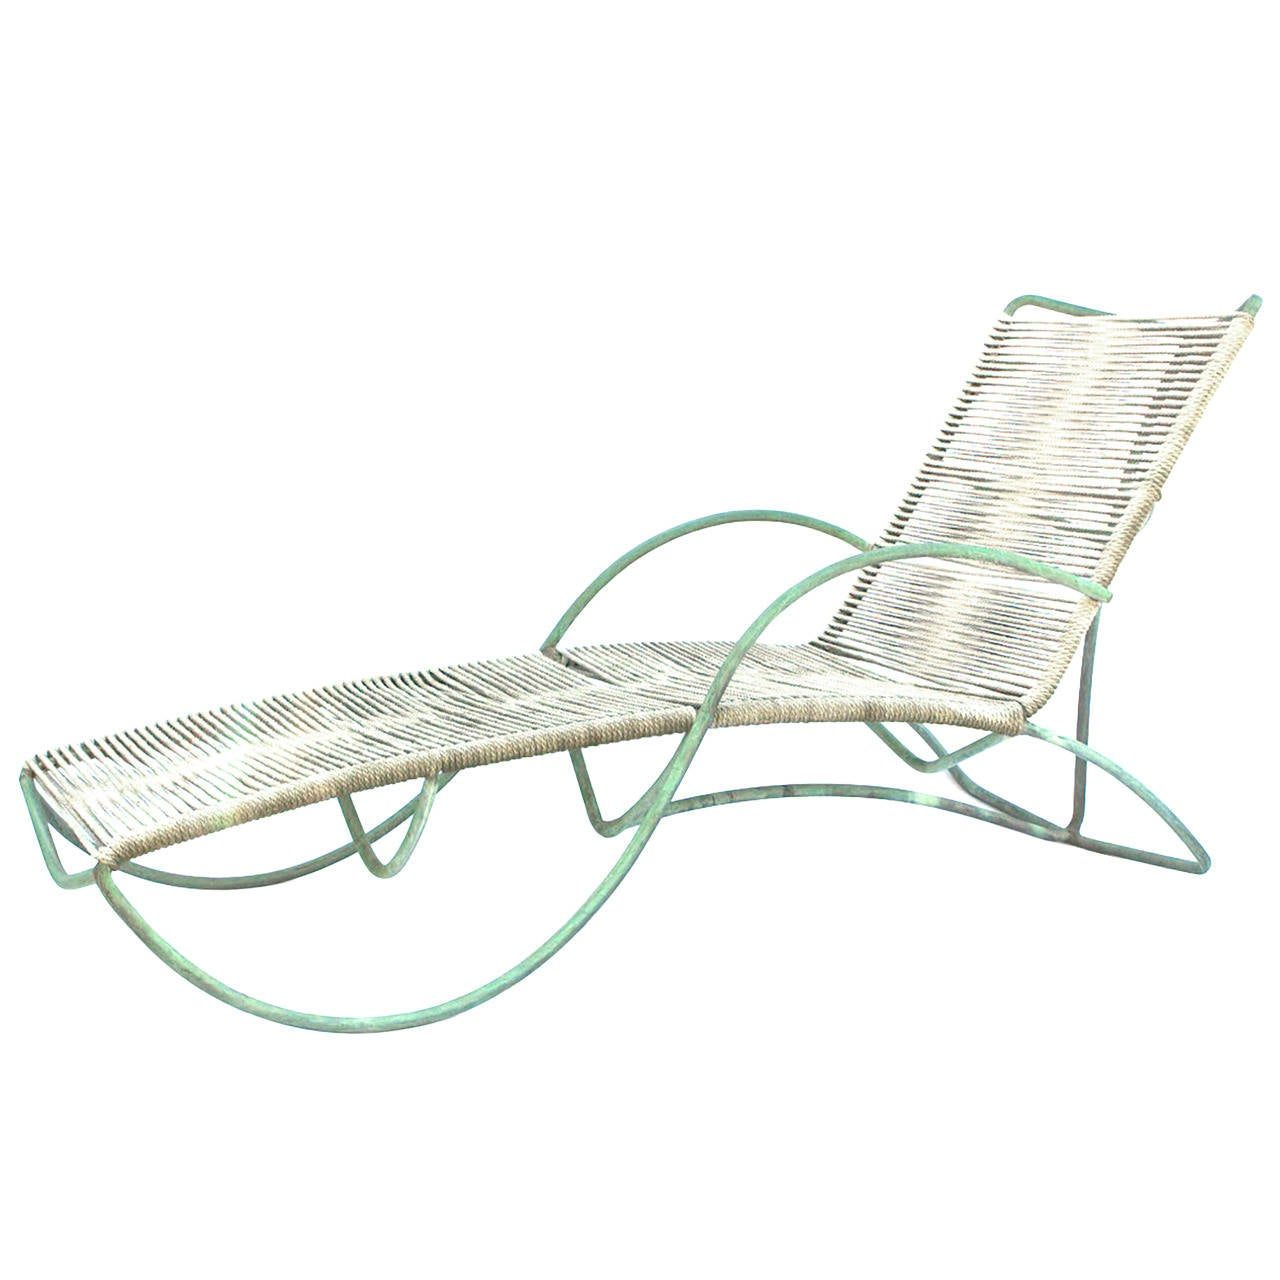 Four walter lamb bronze chaise s lounges at 1stdibs for Bronze chaise lounge